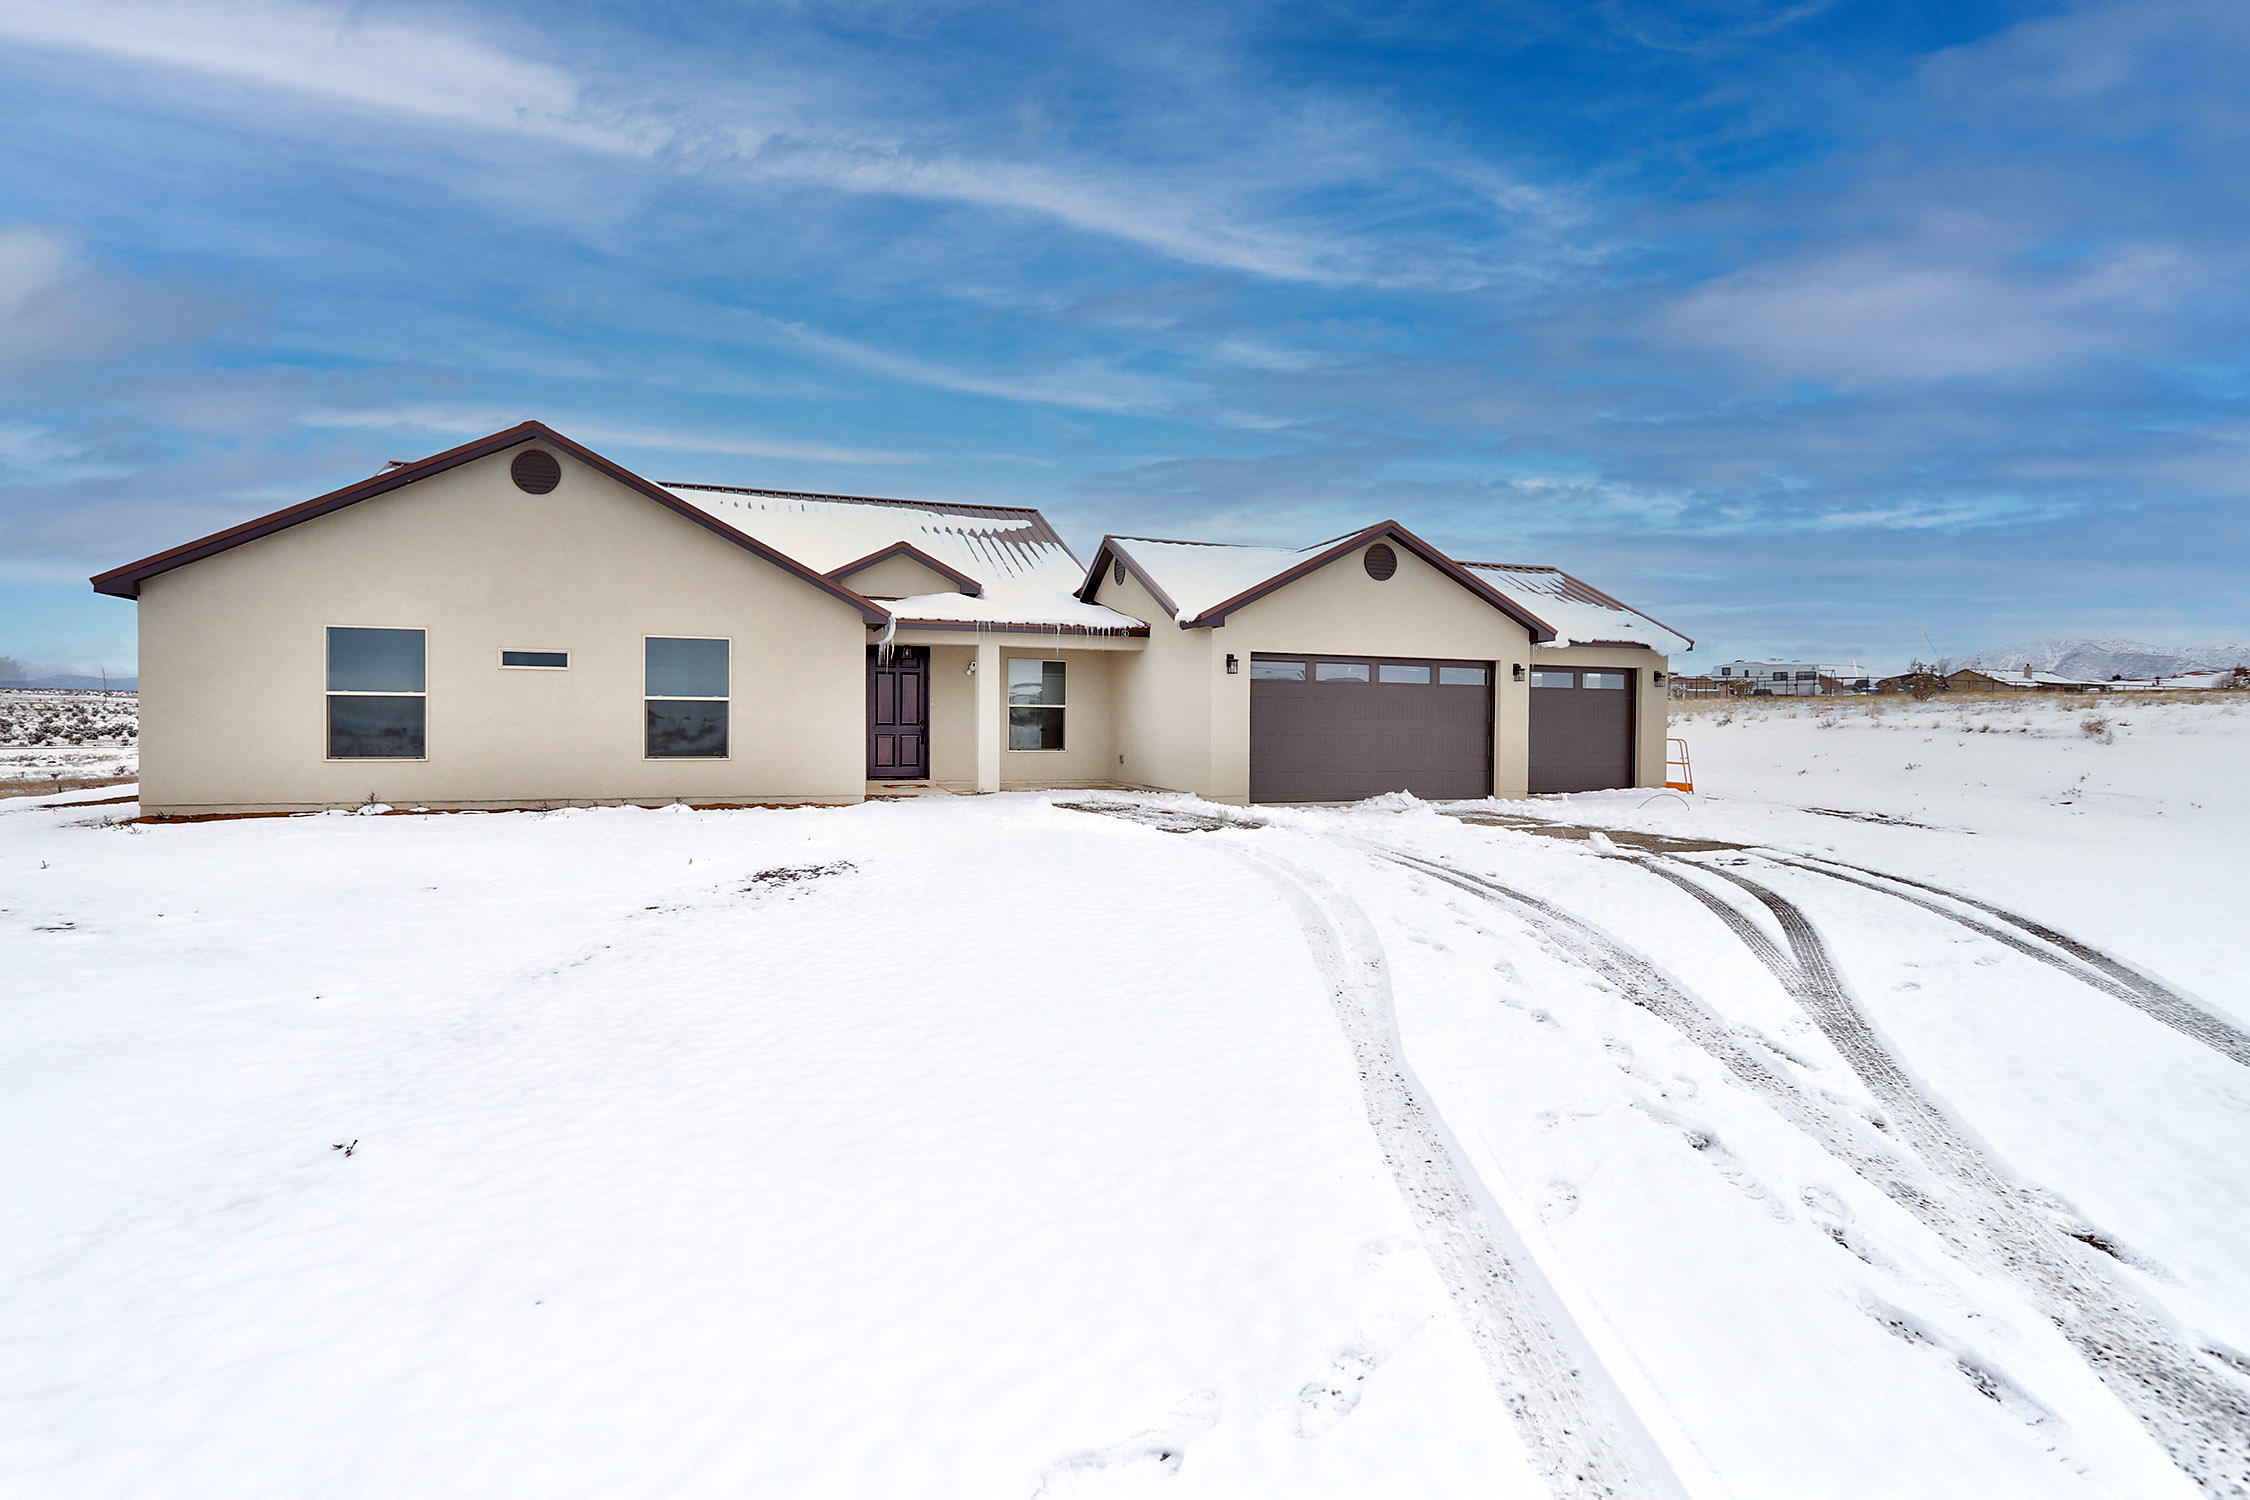 BRAND NEW Custom home! This home was completed in March of 2020. Offers 1 acre of land for all your toys etc, Located at the bottom of the cul-de-sac, Prime location!! 25 mins from ABQ. Features Open Floor Plan, 3 bedroom, 2 bath, tile wood planks throughout, oversized master bath/closet and a 3 car oversized garage! Could be used as workshop as well. Home is very private and cozy . Schedule your private showing today !